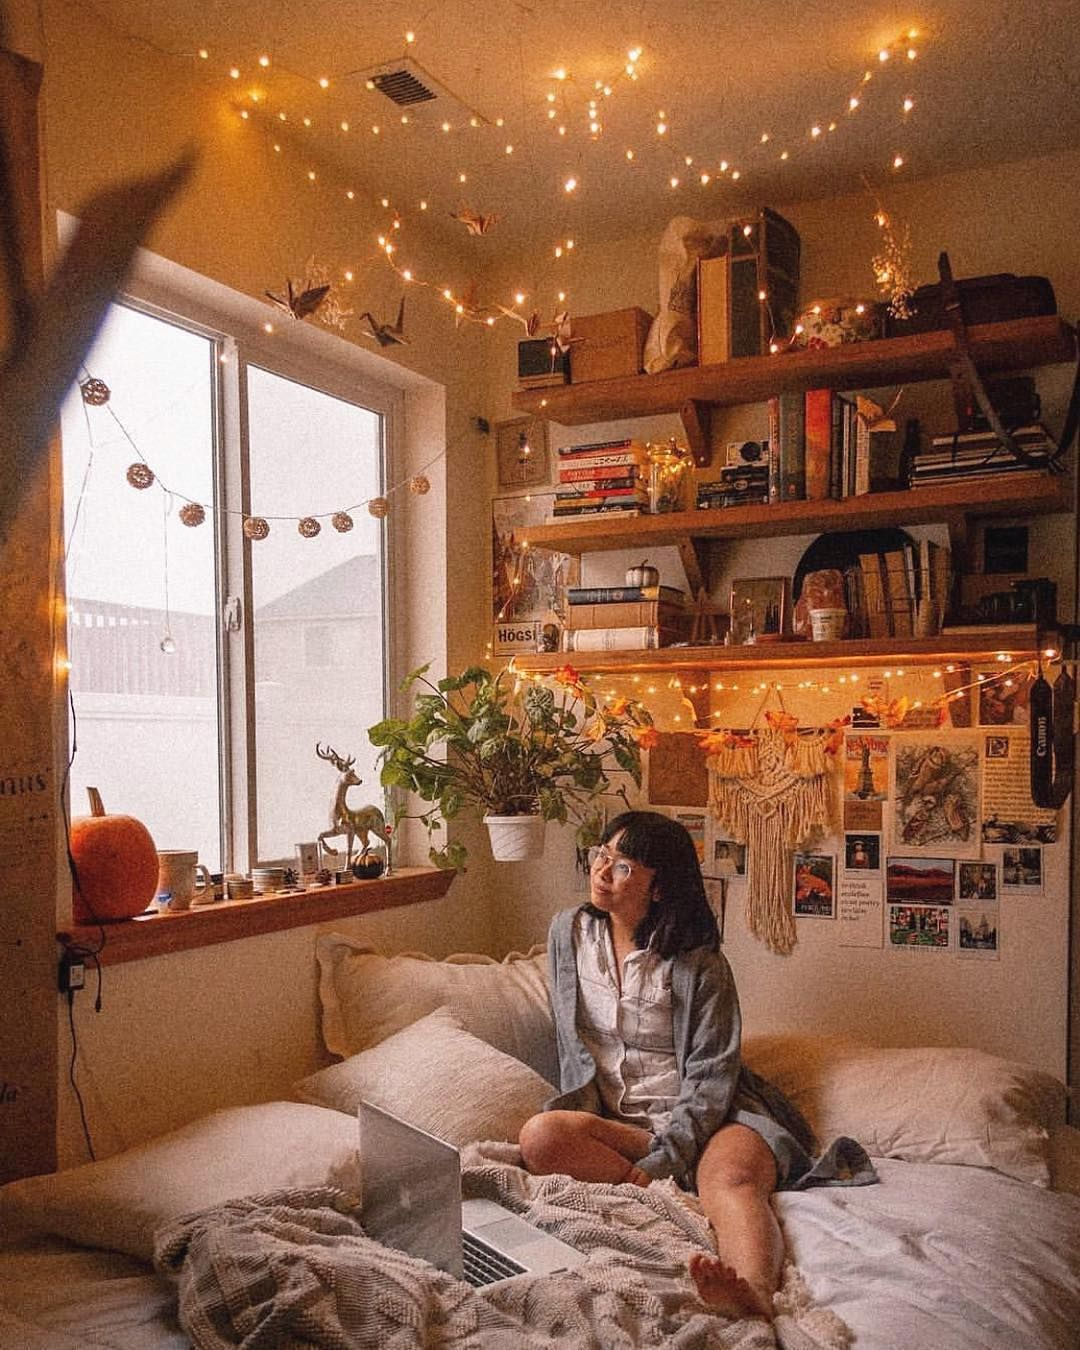 Cozy Levels Are Extremely High Withlovelinh Uohome Urbanoutfittershome Aesthetic Bedroom House Rooms Aesthetic Rooms